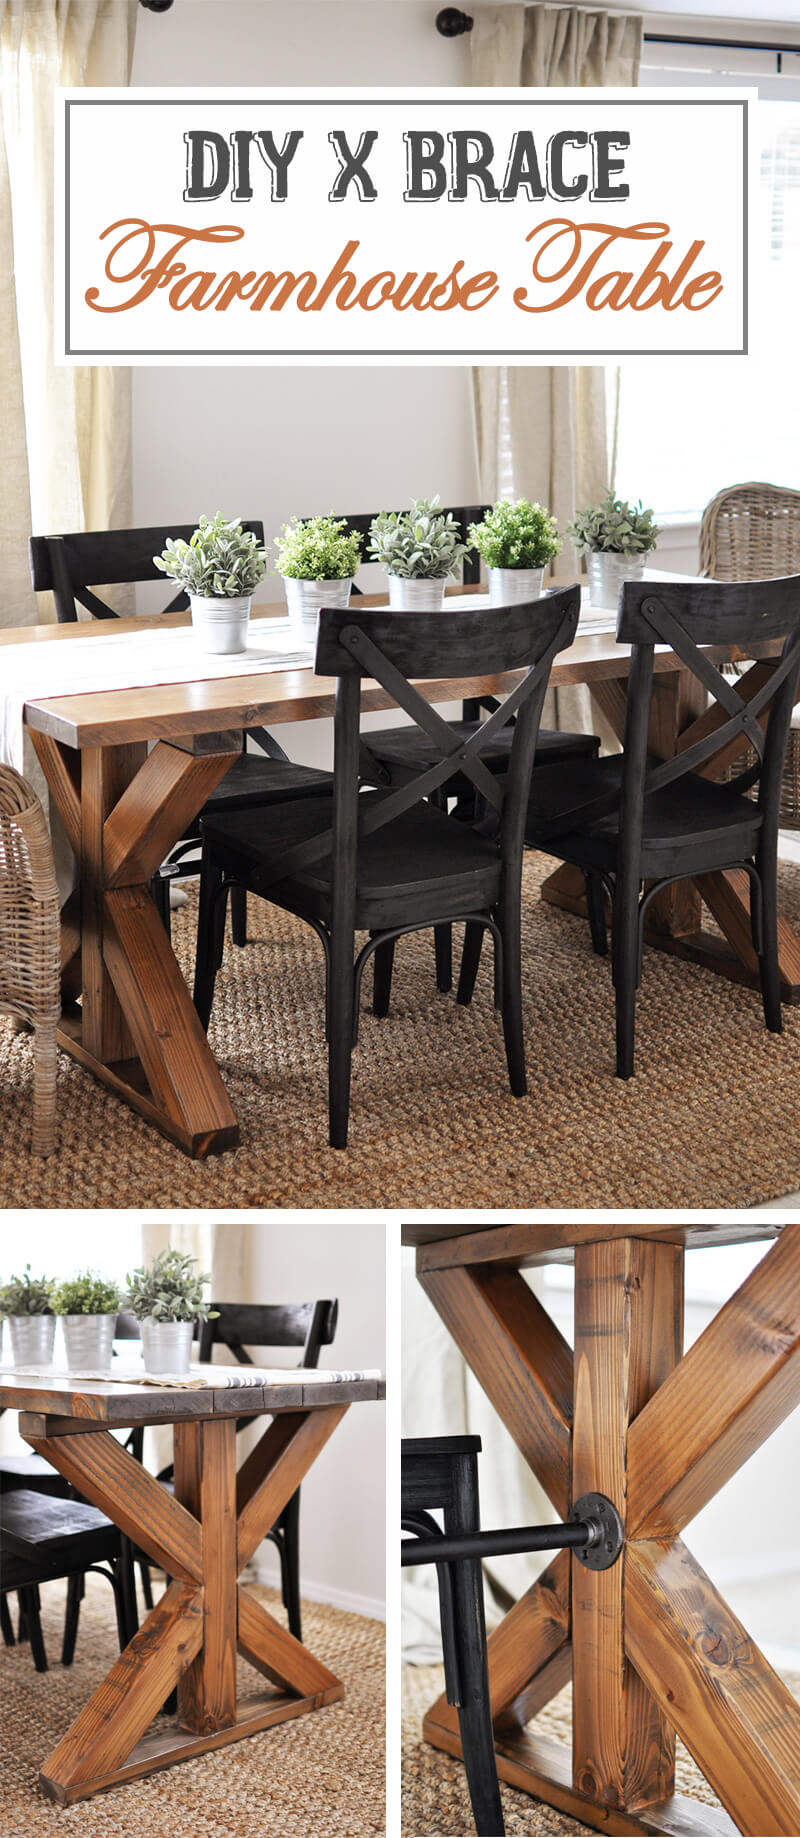 Miraculous 17 Best Rustic Diy Farmhouse Table Ideas And Designs For 2019 Home Interior And Landscaping Ologienasavecom